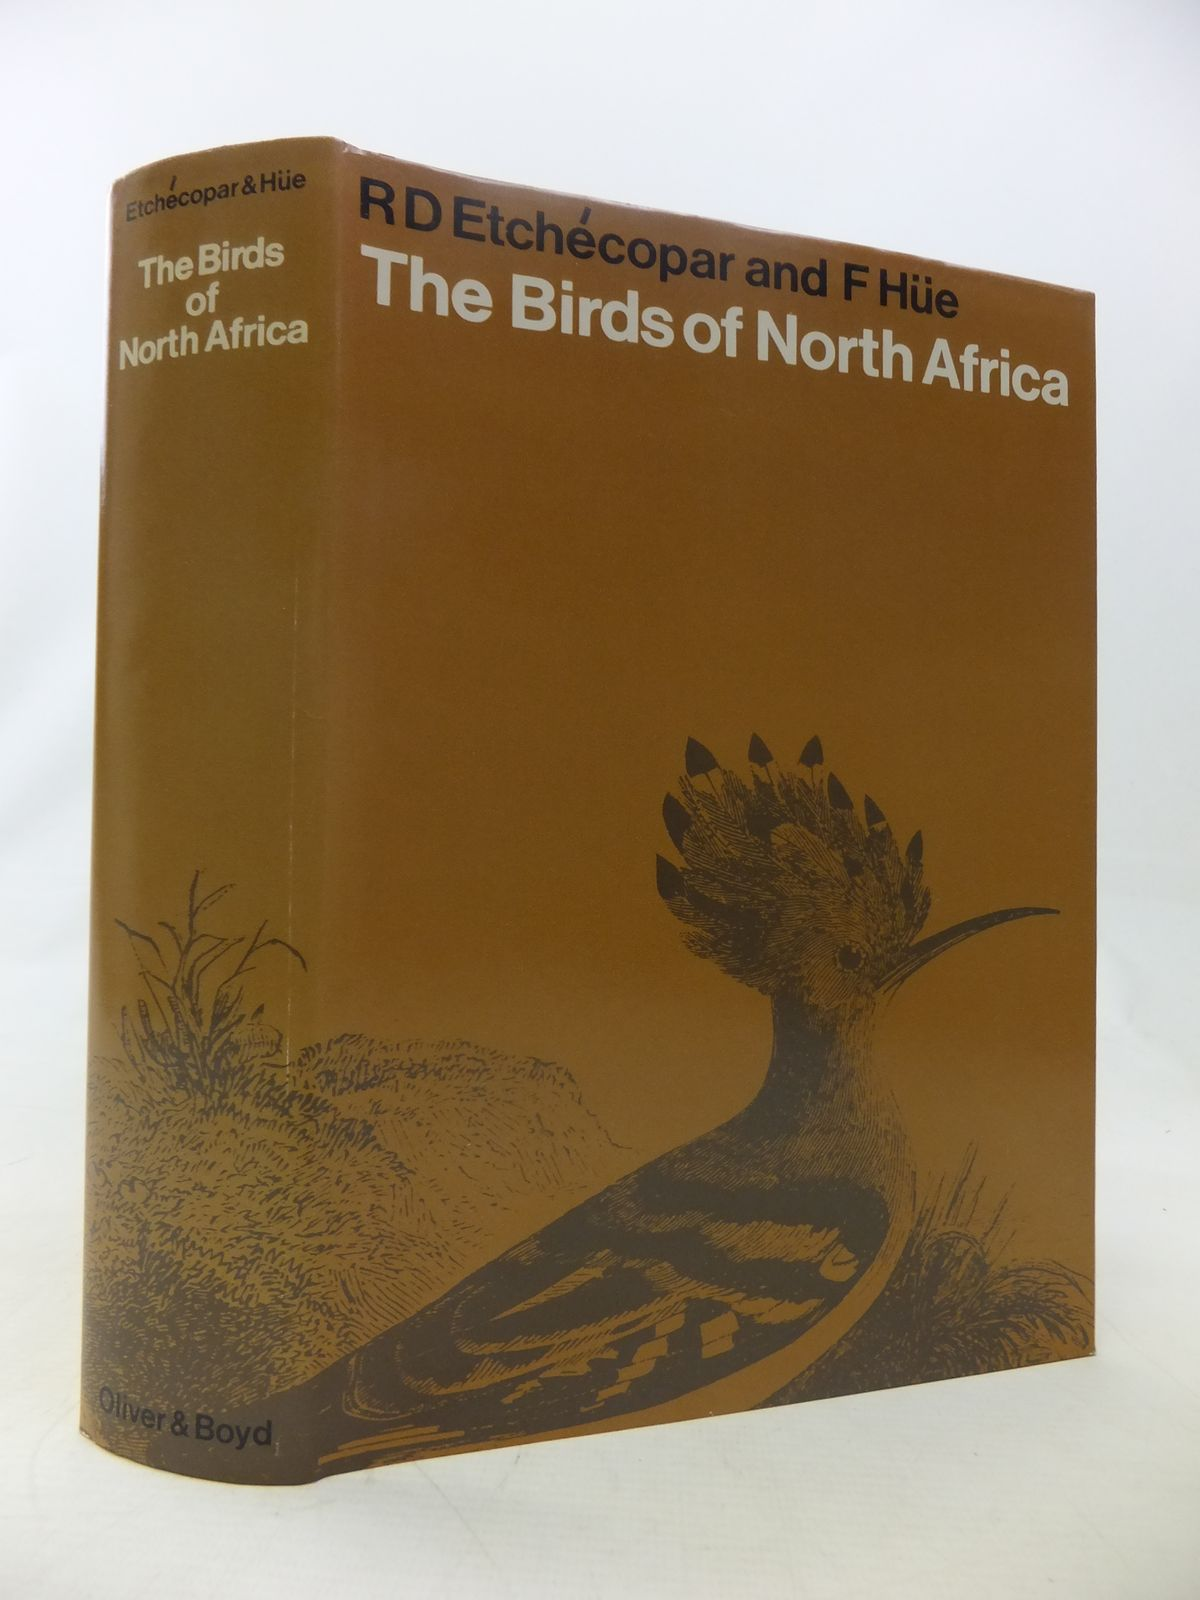 Photo of THE BIRDS OF NORTH AFRICA FROM THE CANARY ISLANDS TO THE RED SEA written by Etchecopar, R.D. Hue, Francois illustrated by Barruel, Paul published by Oliver & Boyd (STOCK CODE: 1811050)  for sale by Stella & Rose's Books